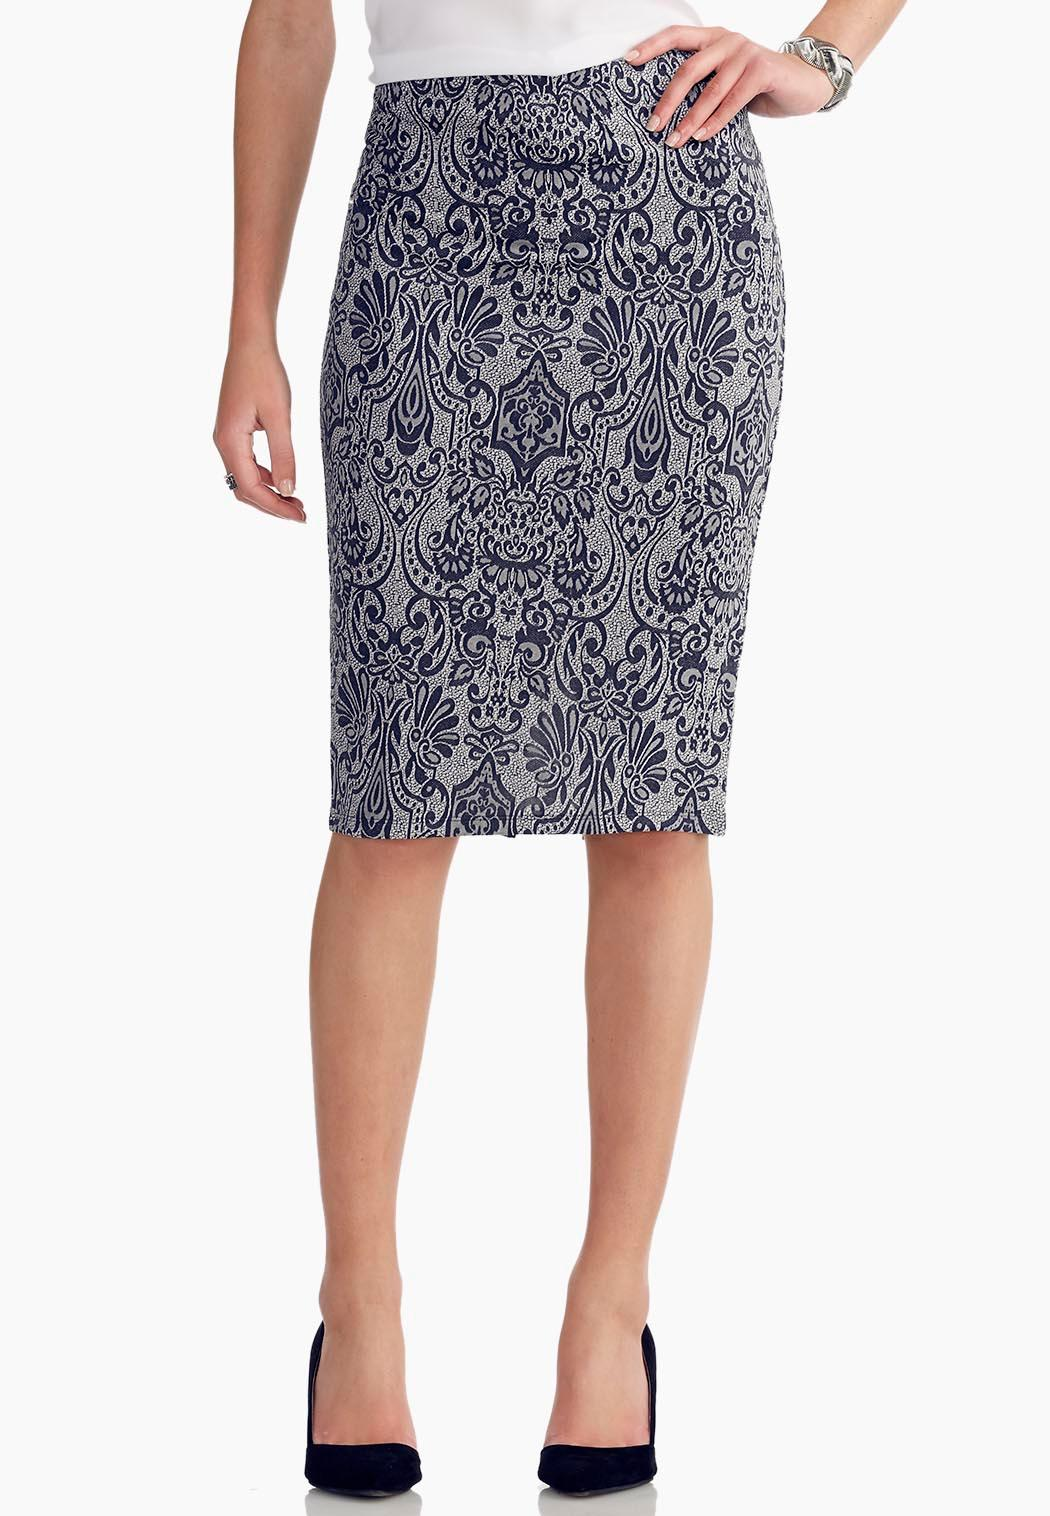 graphic scroll midi skirt below the knee cato fashions